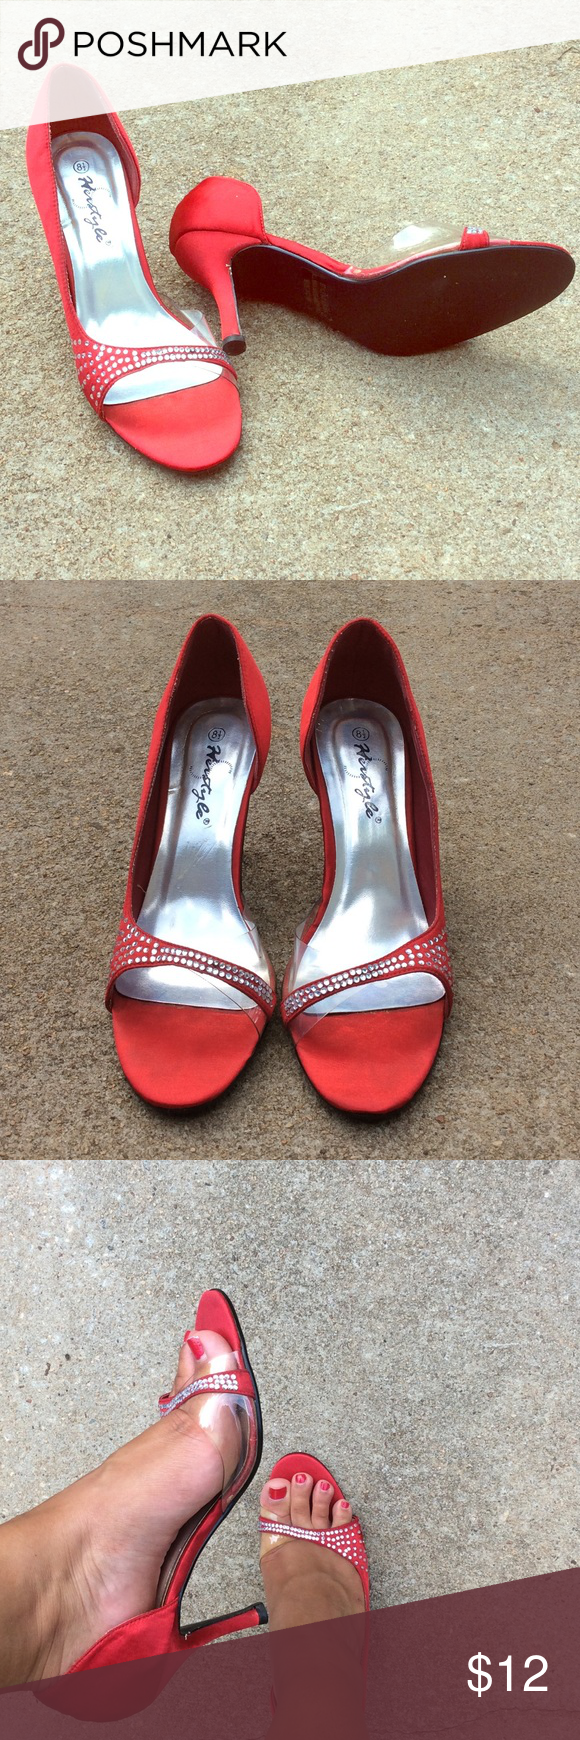 Red rhinestone heels Size 8.5 red rhinestone heels. There are no rhinestones missing. These shoes were worn one time for Homecoming Court. Heel height: 3.5 inches Shoes Heels